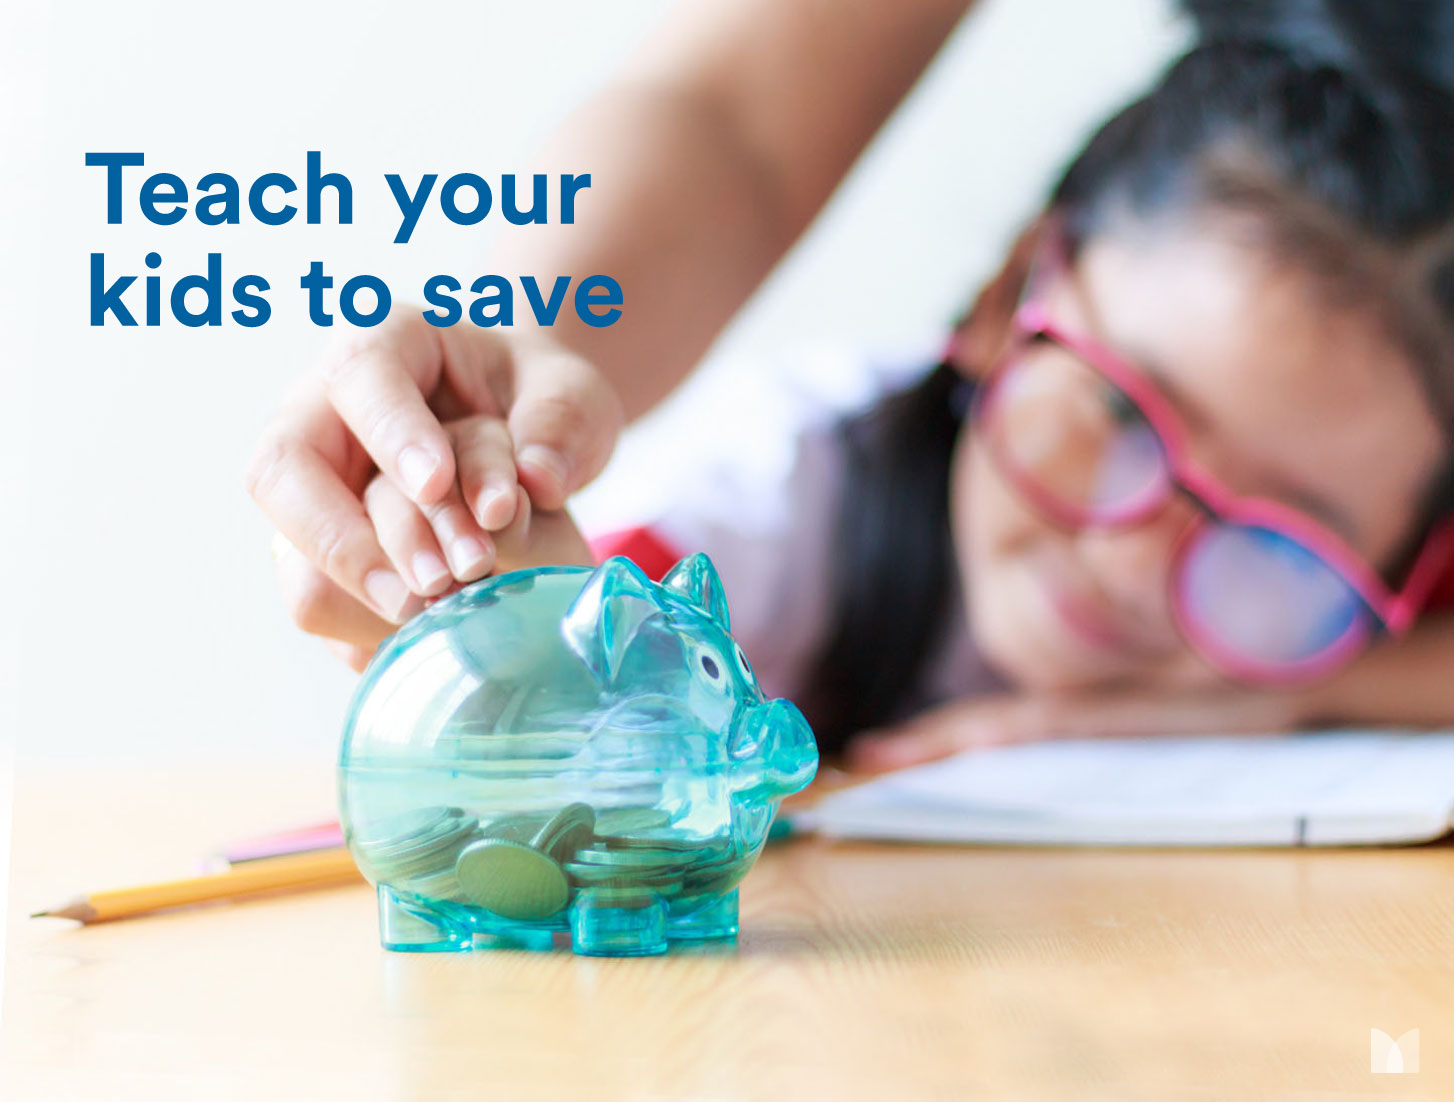 How to teach your kids about saving money